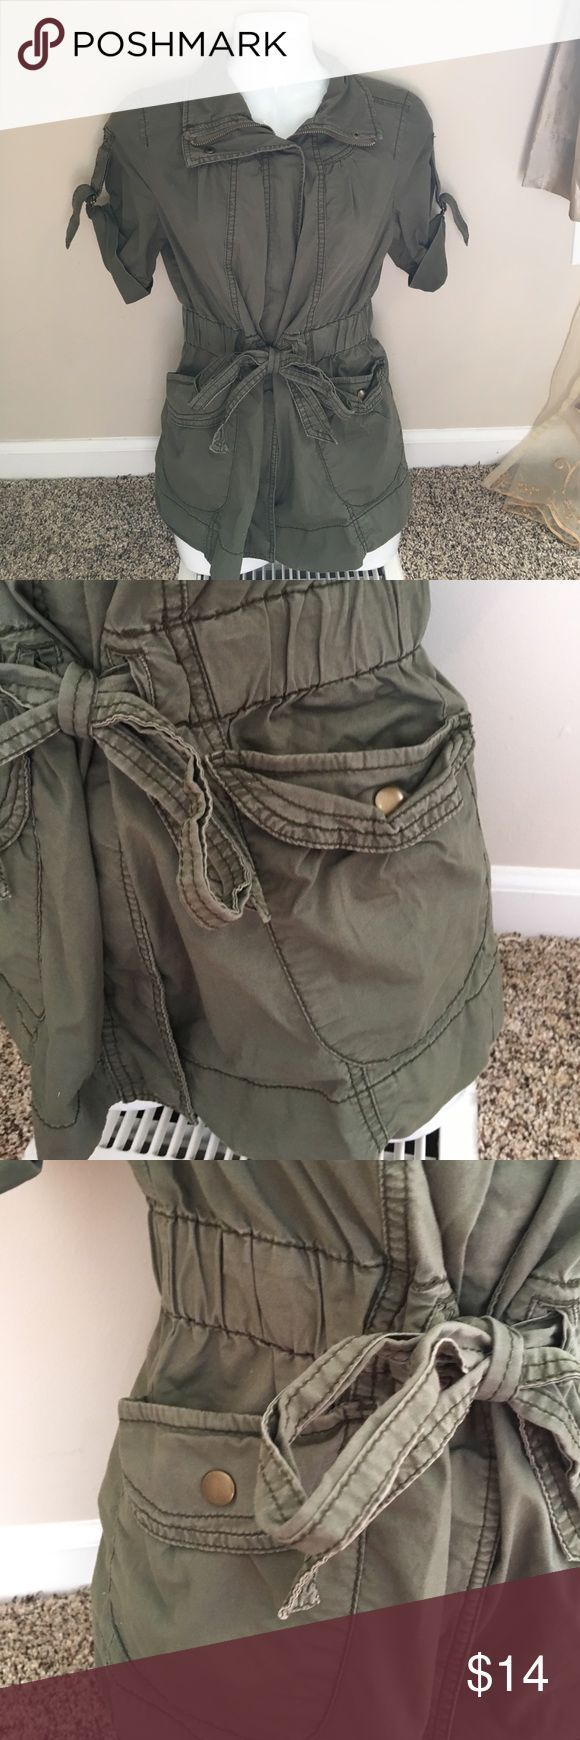 Army Green Zip Up Jacket Cute army green zip up jacket! Super cute! Size small. From Decree which is from JC Penny's! Make an offer or bundle to save even more! Decree Jackets & Coats Utility Jackets